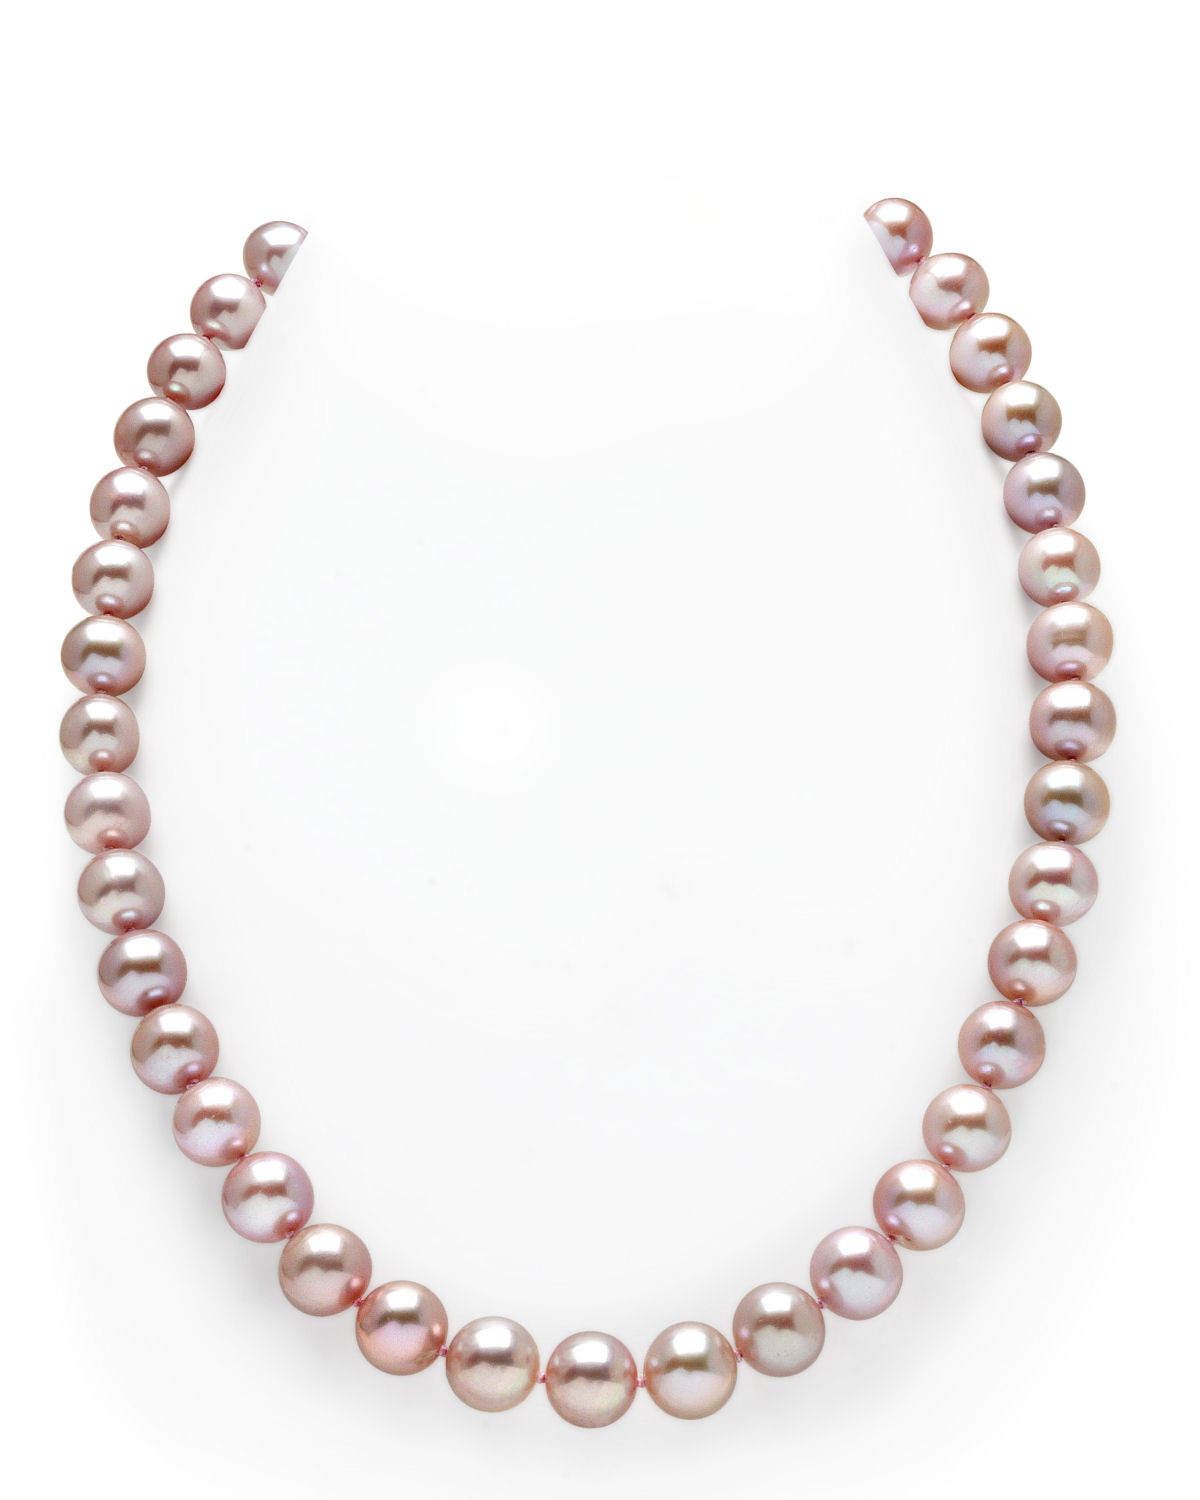 10-11mm Pink Freshwater Pearl Necklace